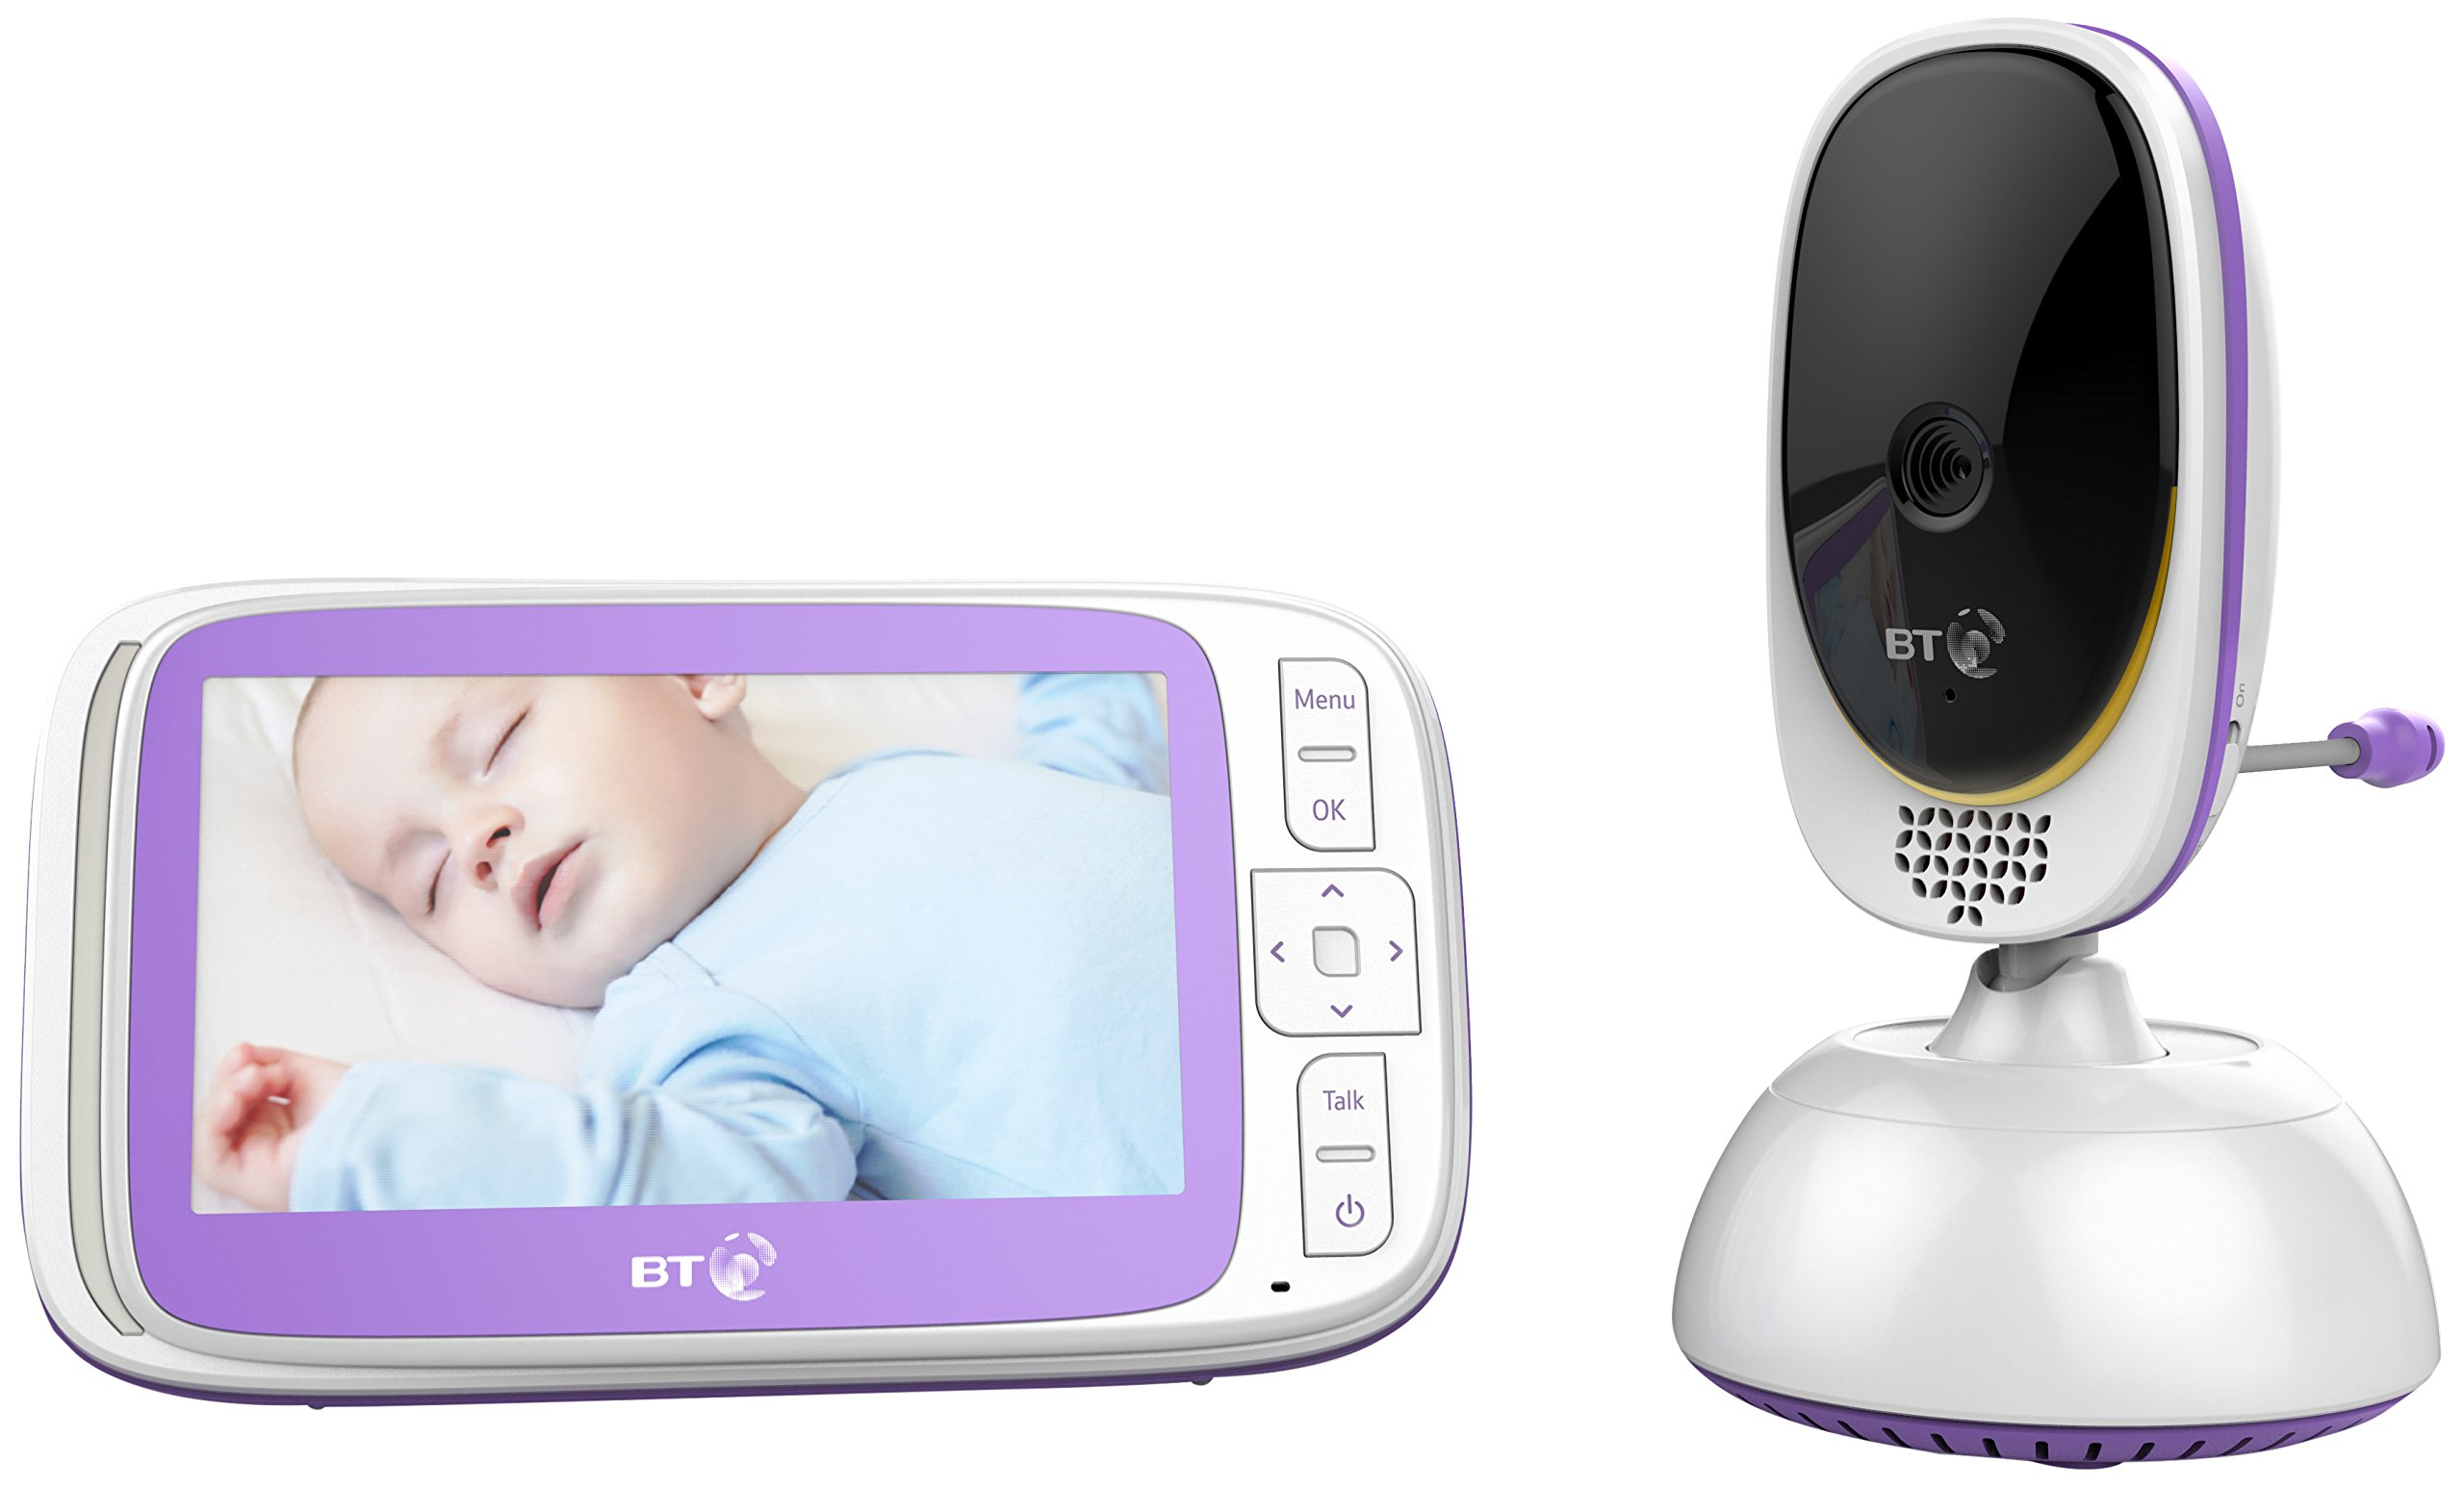 BT Video Baby Monitor 6000 BT 5 inch screen Temperature indication / 5 lullabies Remote control pan and tilt mechanism 1